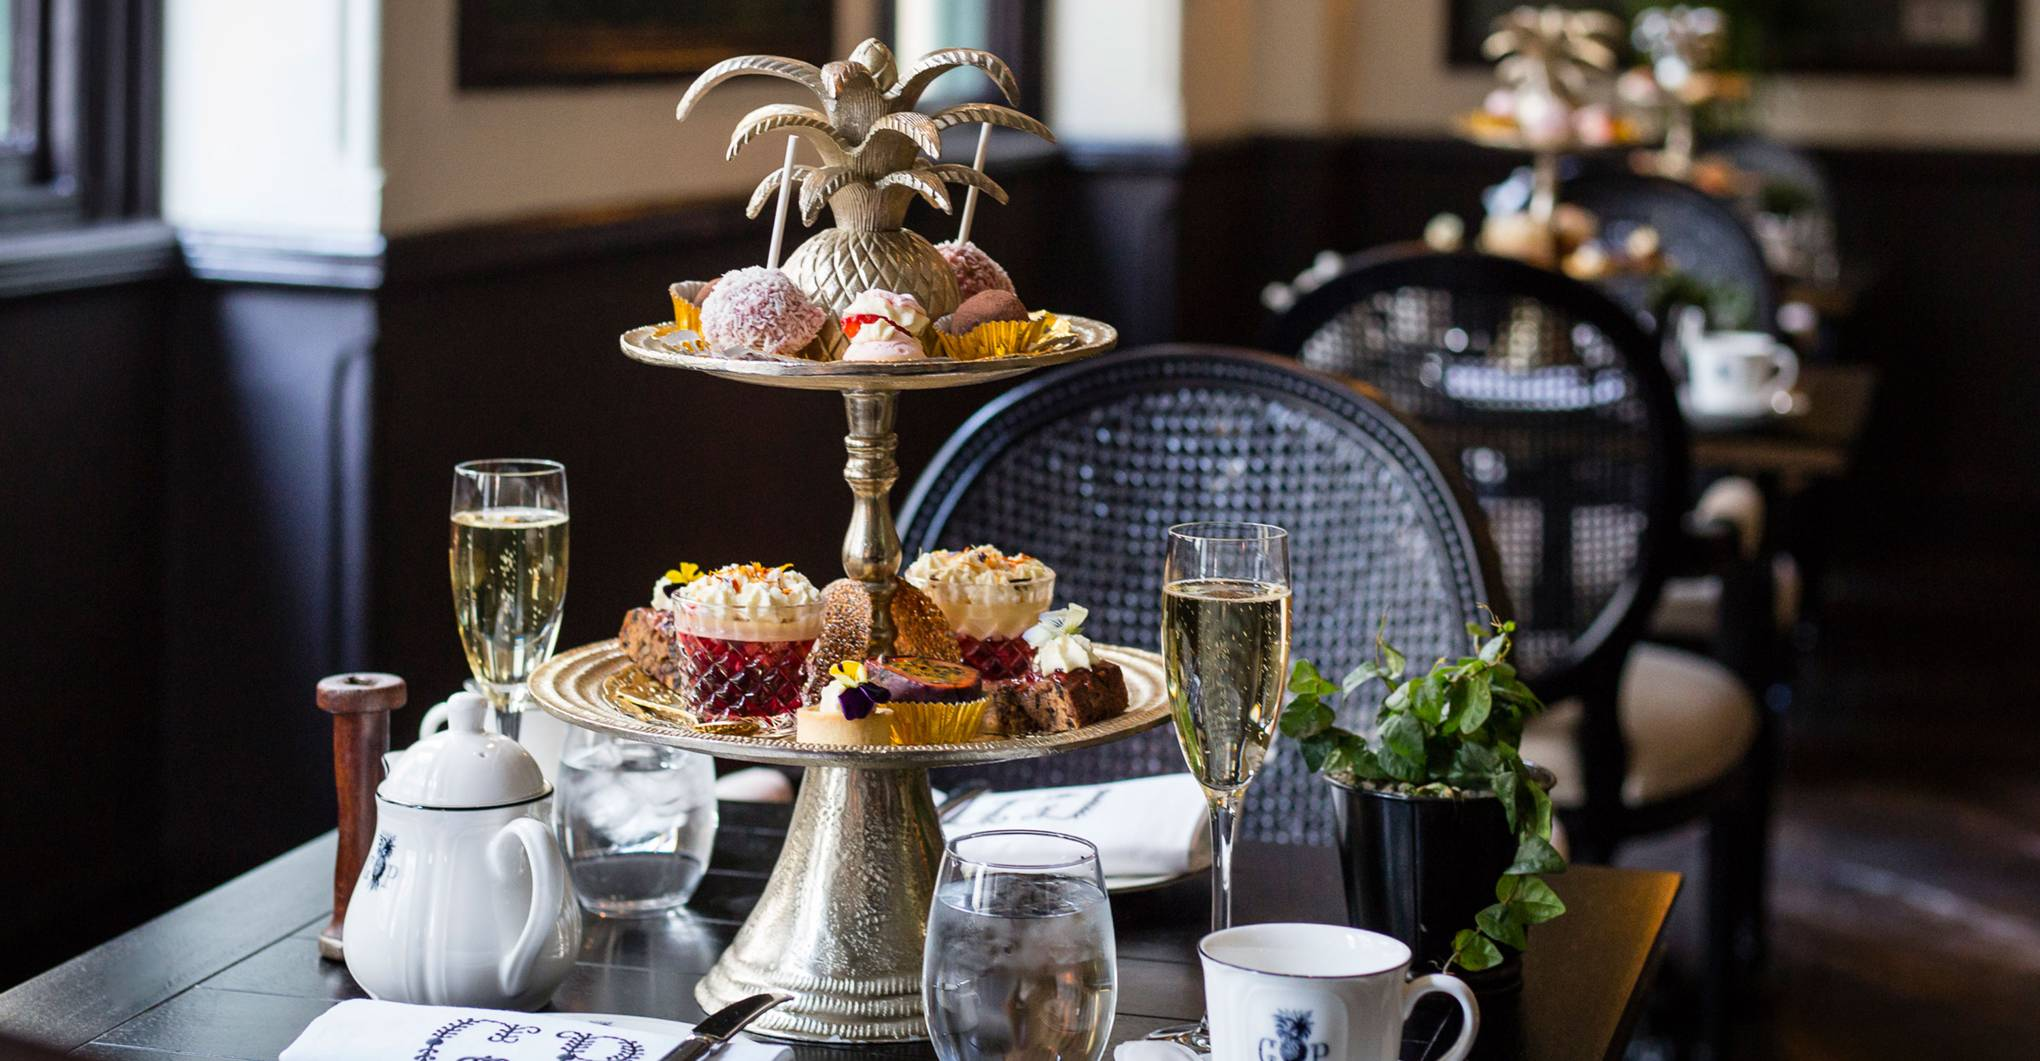 The best afternoon tea in Manchester